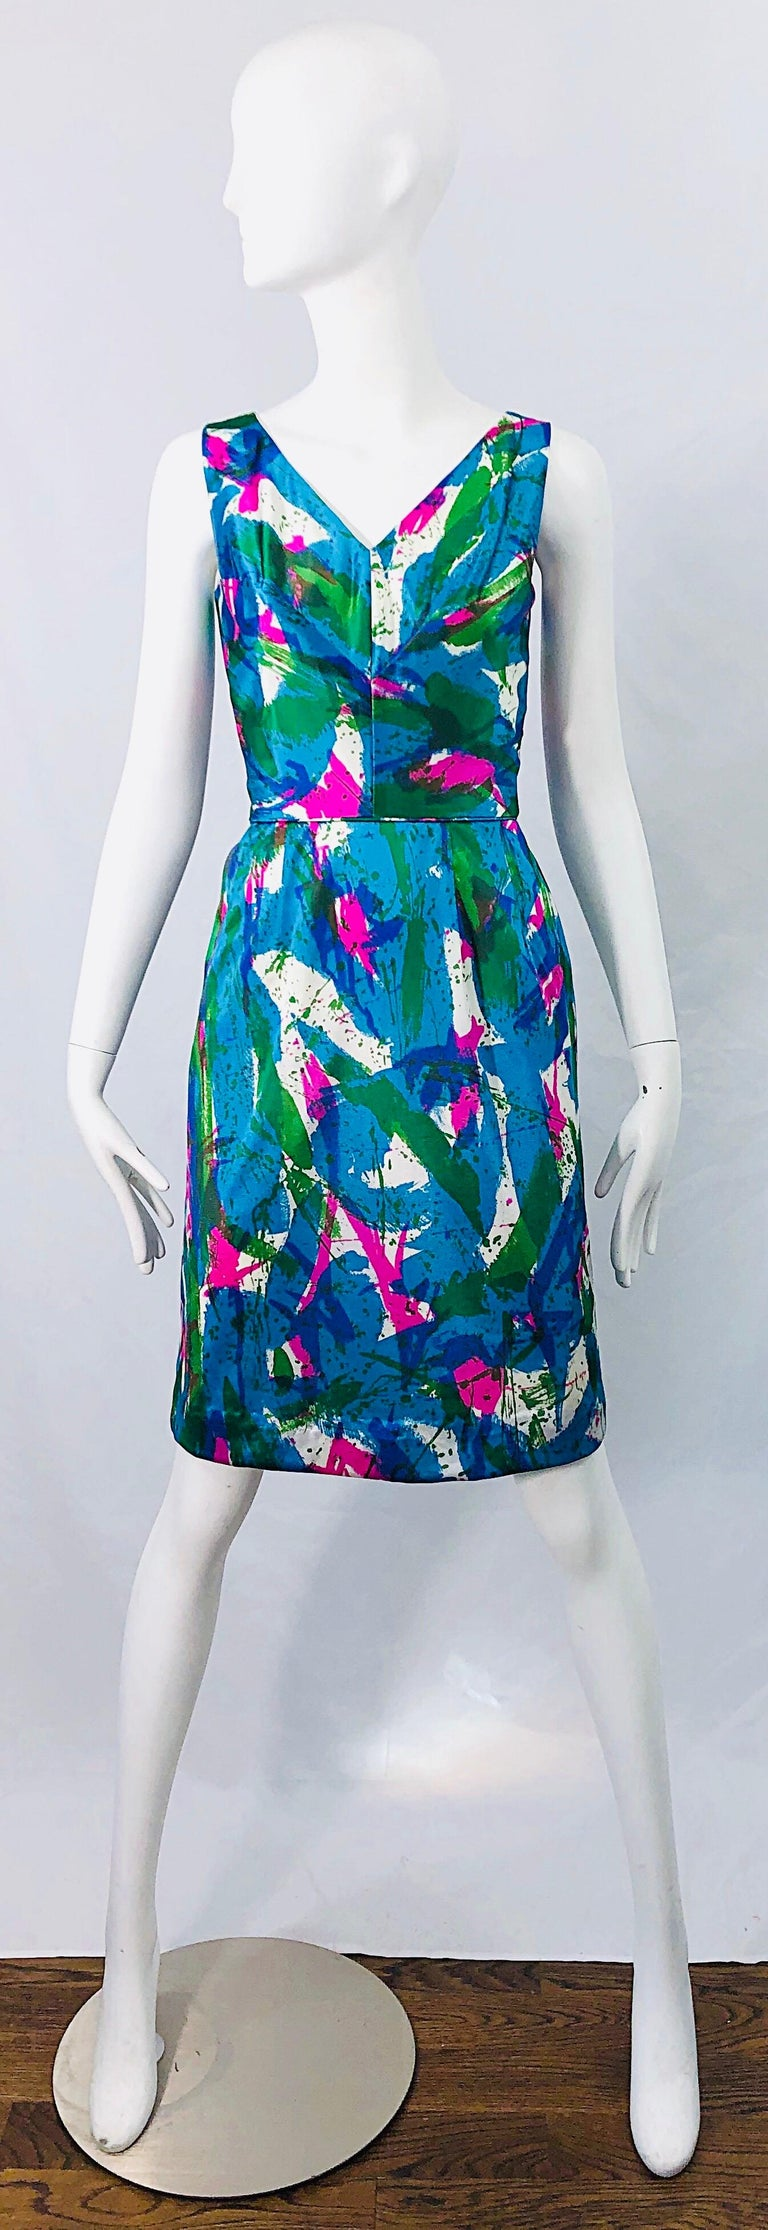 Chic 1960s Neon Abstract Print Two Piece Vintage 60s Sheath Dress + Top Blouse  For Sale 8